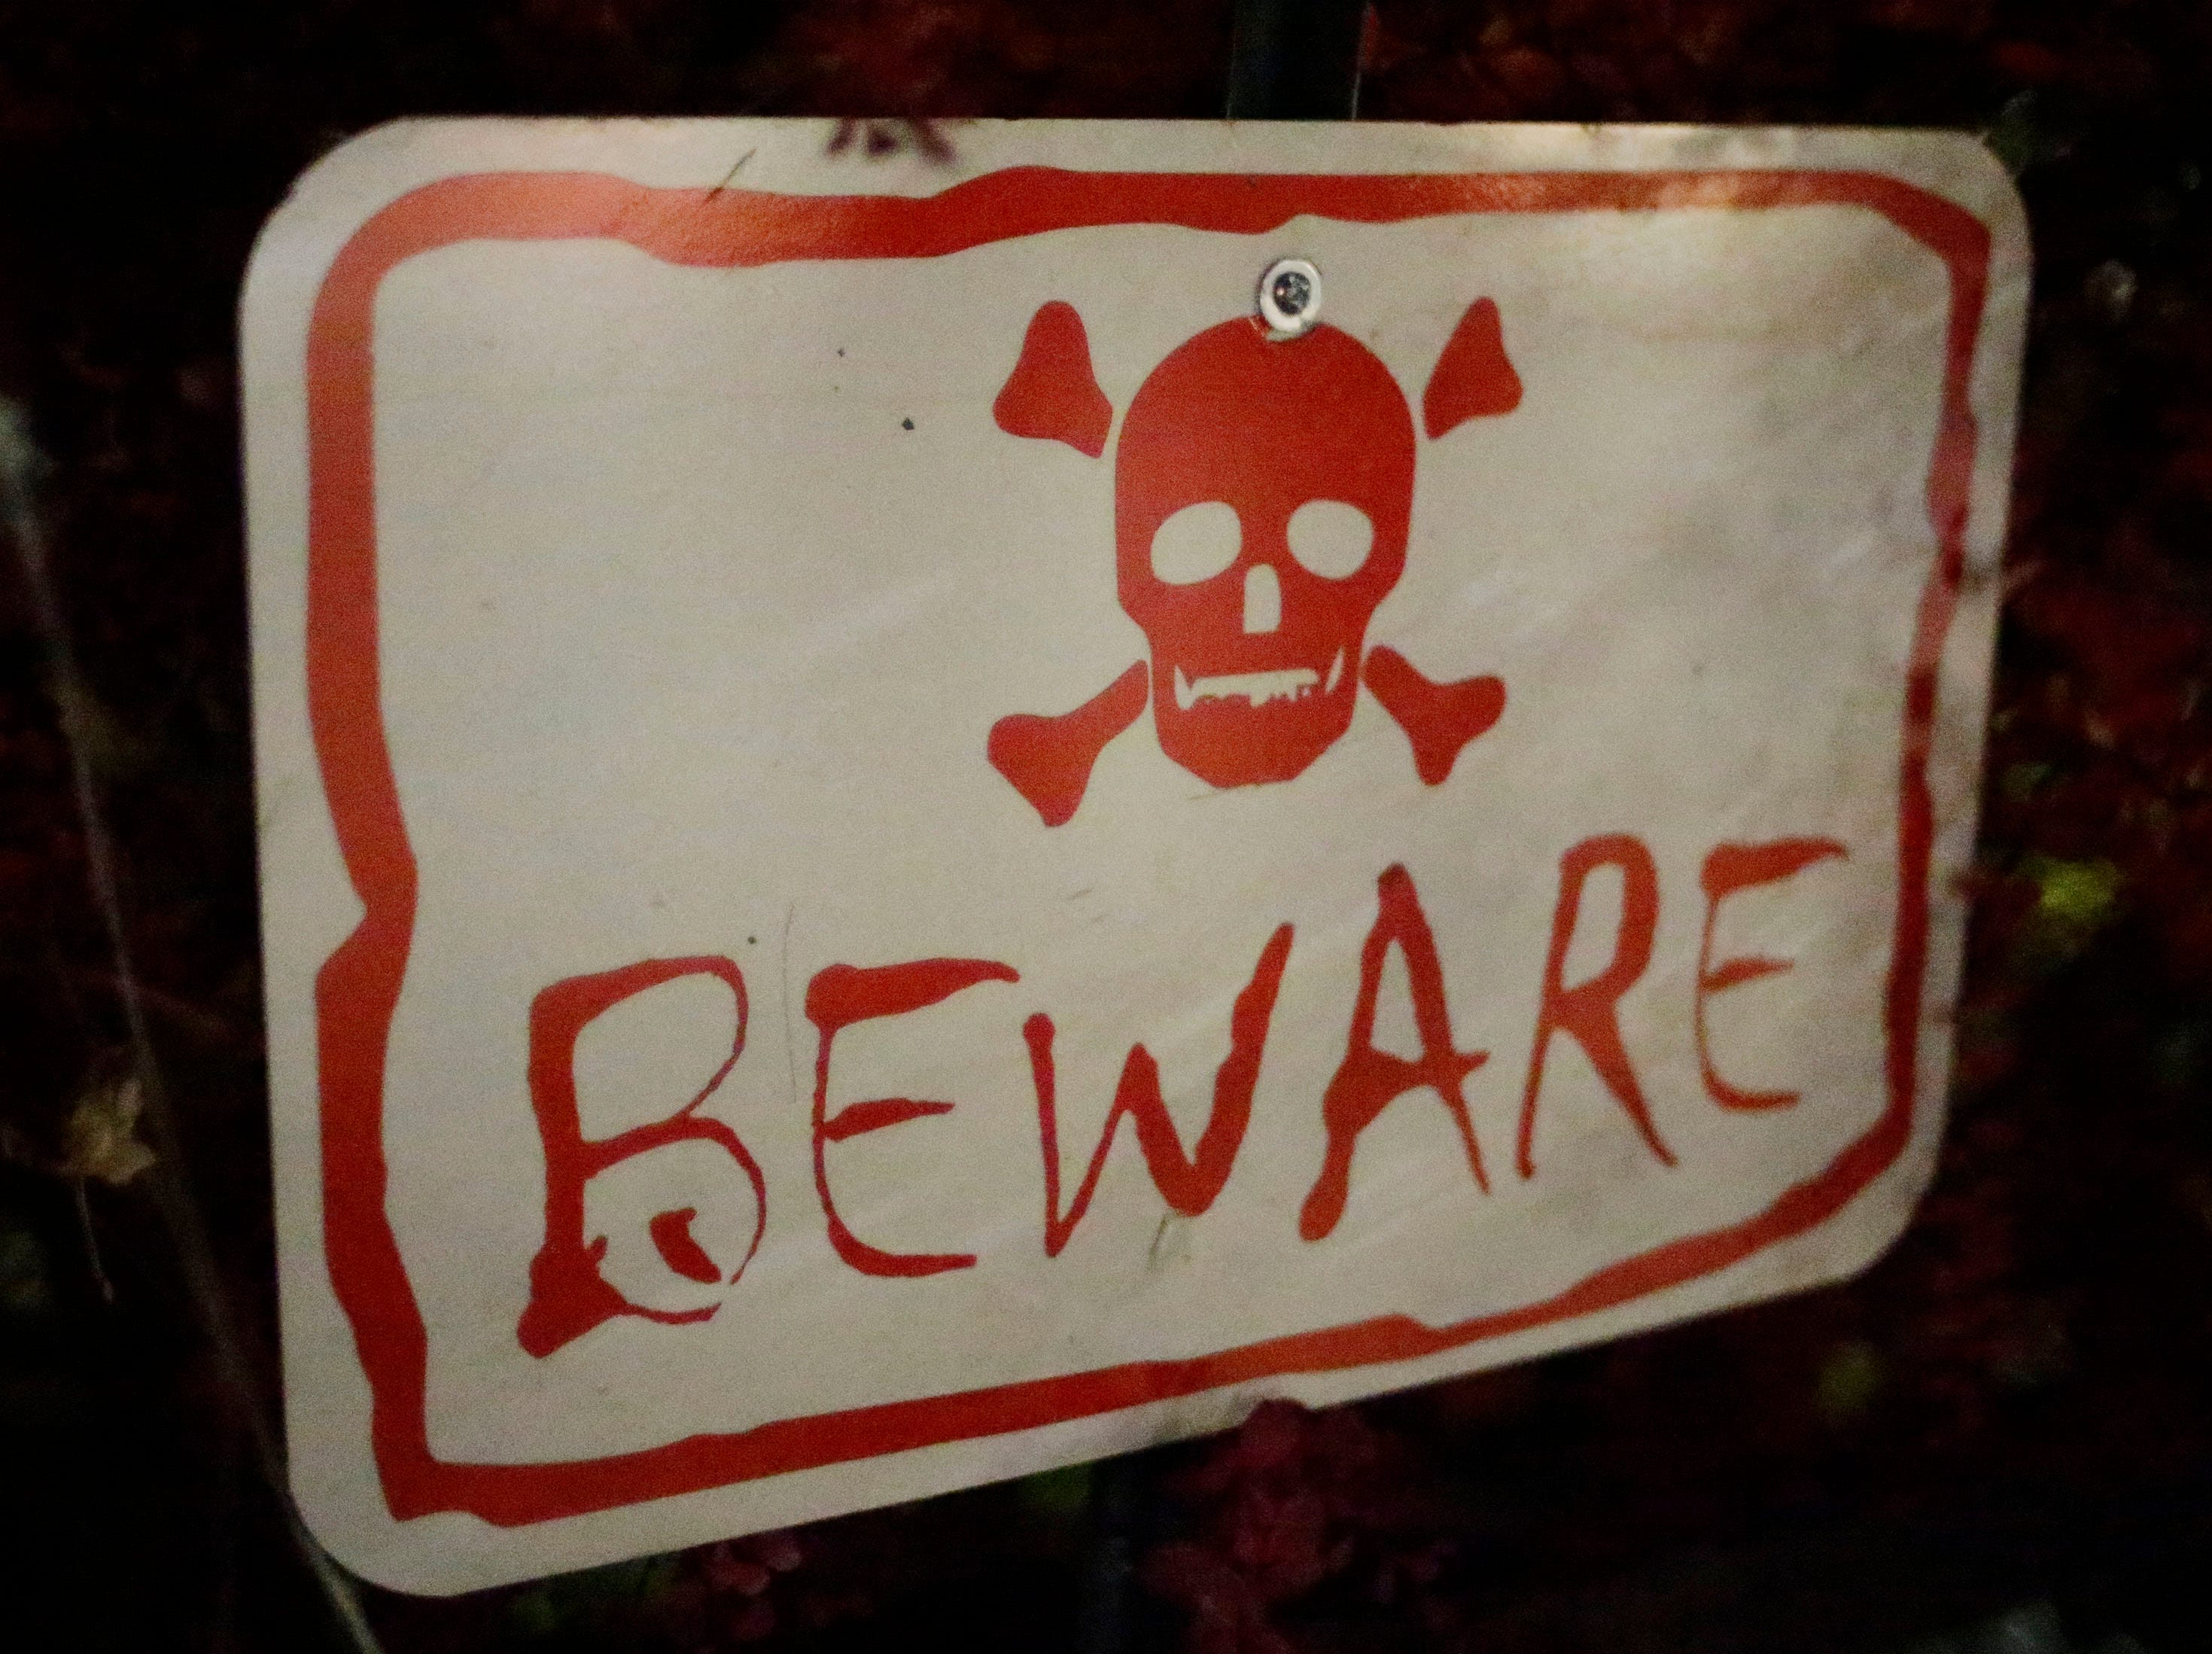 A sign warns visitors to Scott Grunert's haunted yard during Trick or Treat, Wednesday, October 31, 2018, in Sheboygan, Wis.